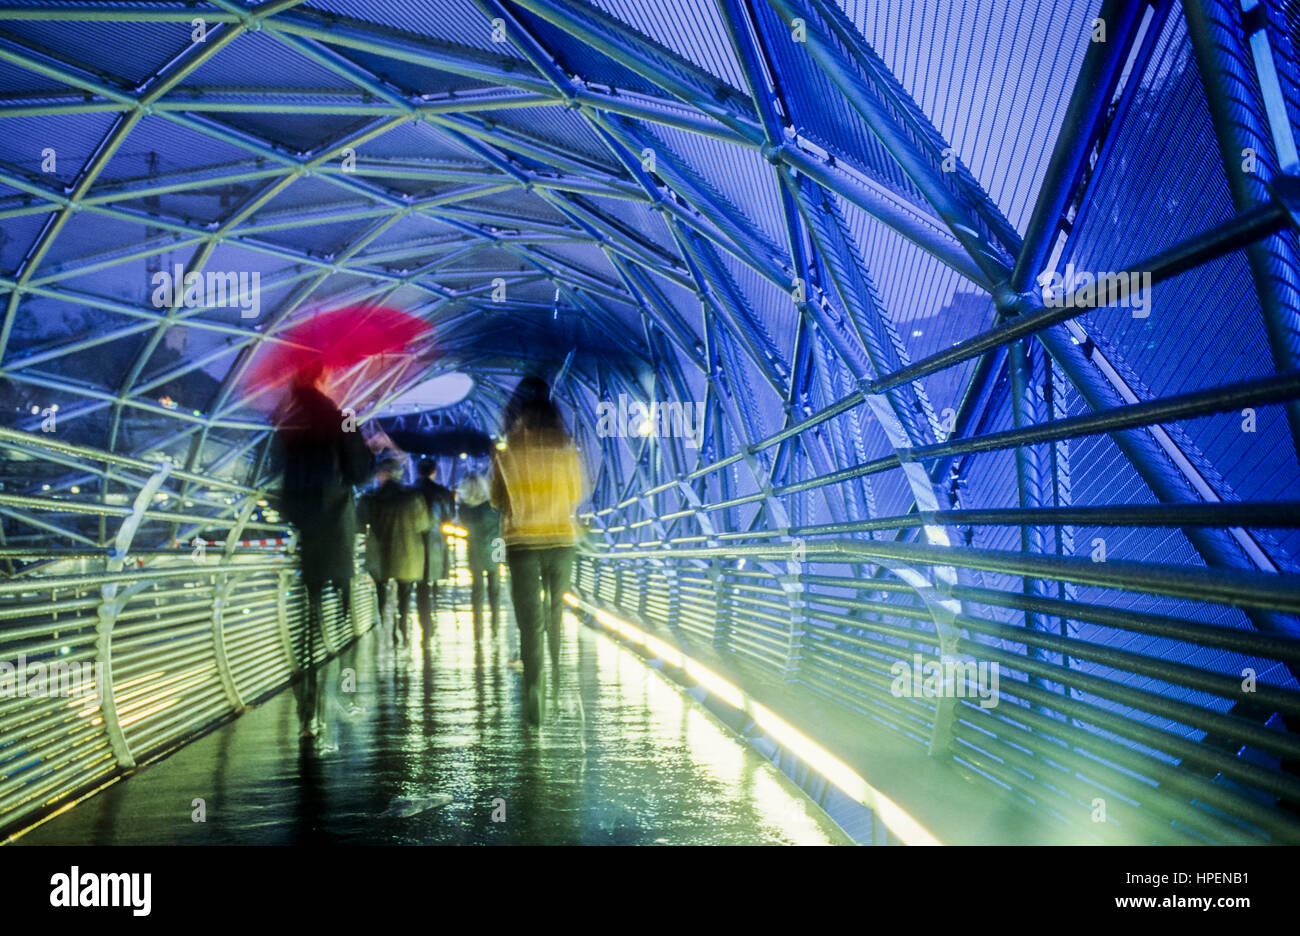 Inside of the Murinsel, Mur Island on Mur River, Graz, Austria, Europe - Stock Image